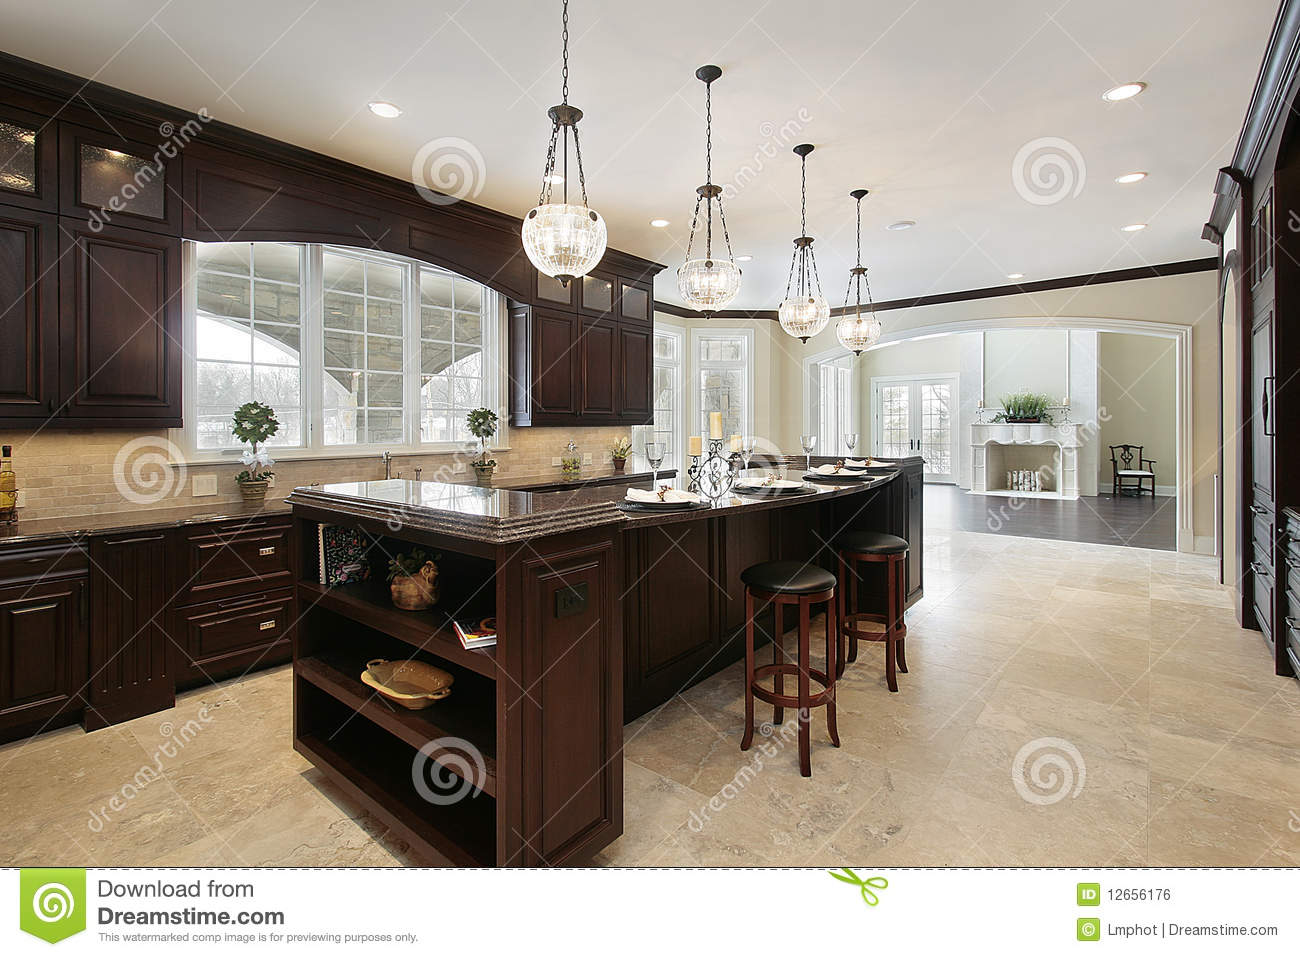 Kitchen With Dark Wood Cabinetry Stock Photo Image 12656176